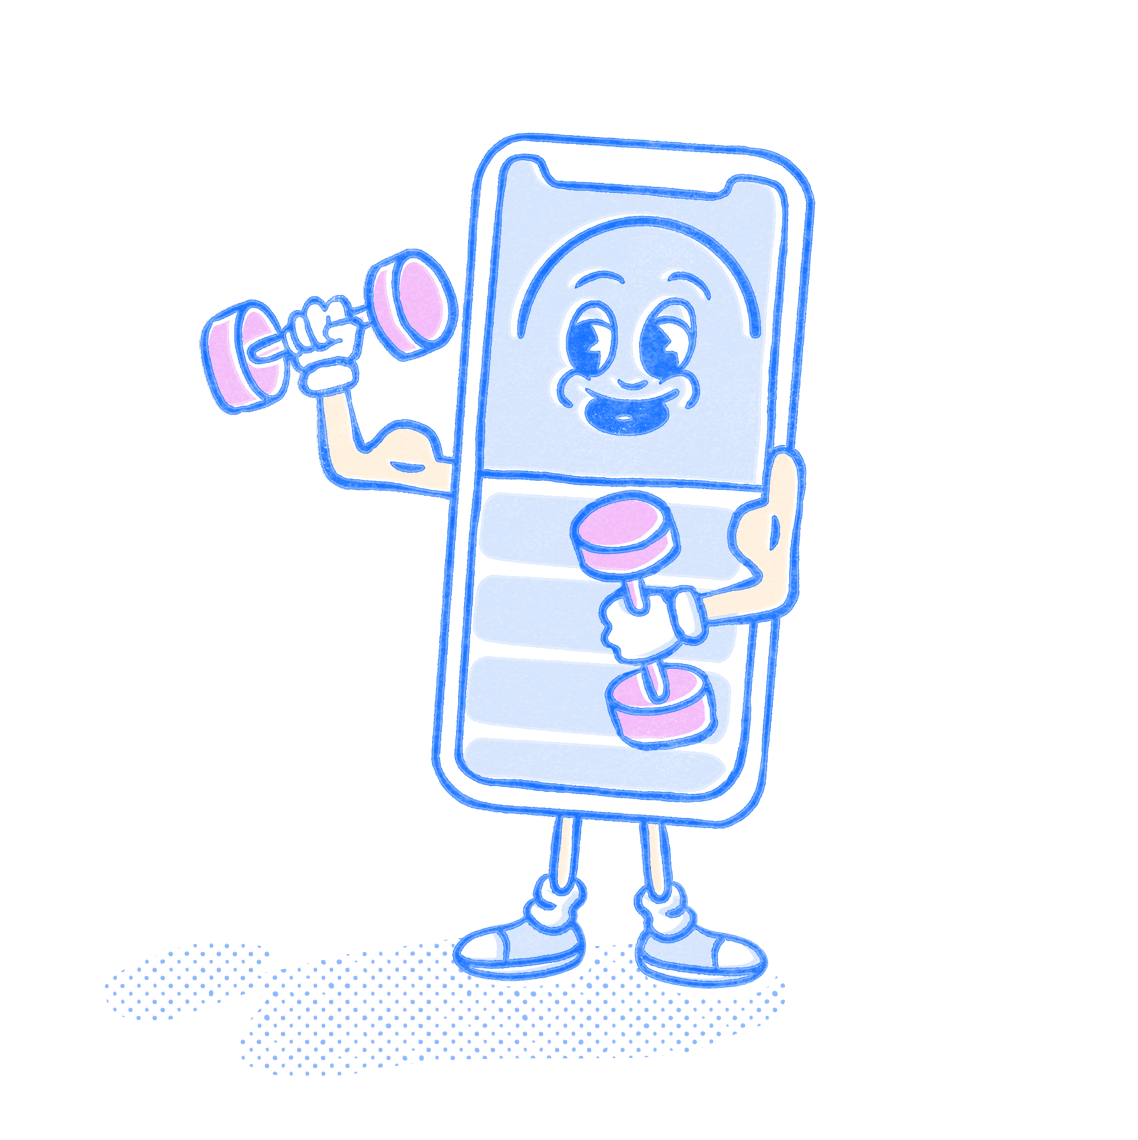 Fitness Pocket Prep mascot lifting dumbbells. Illustration.